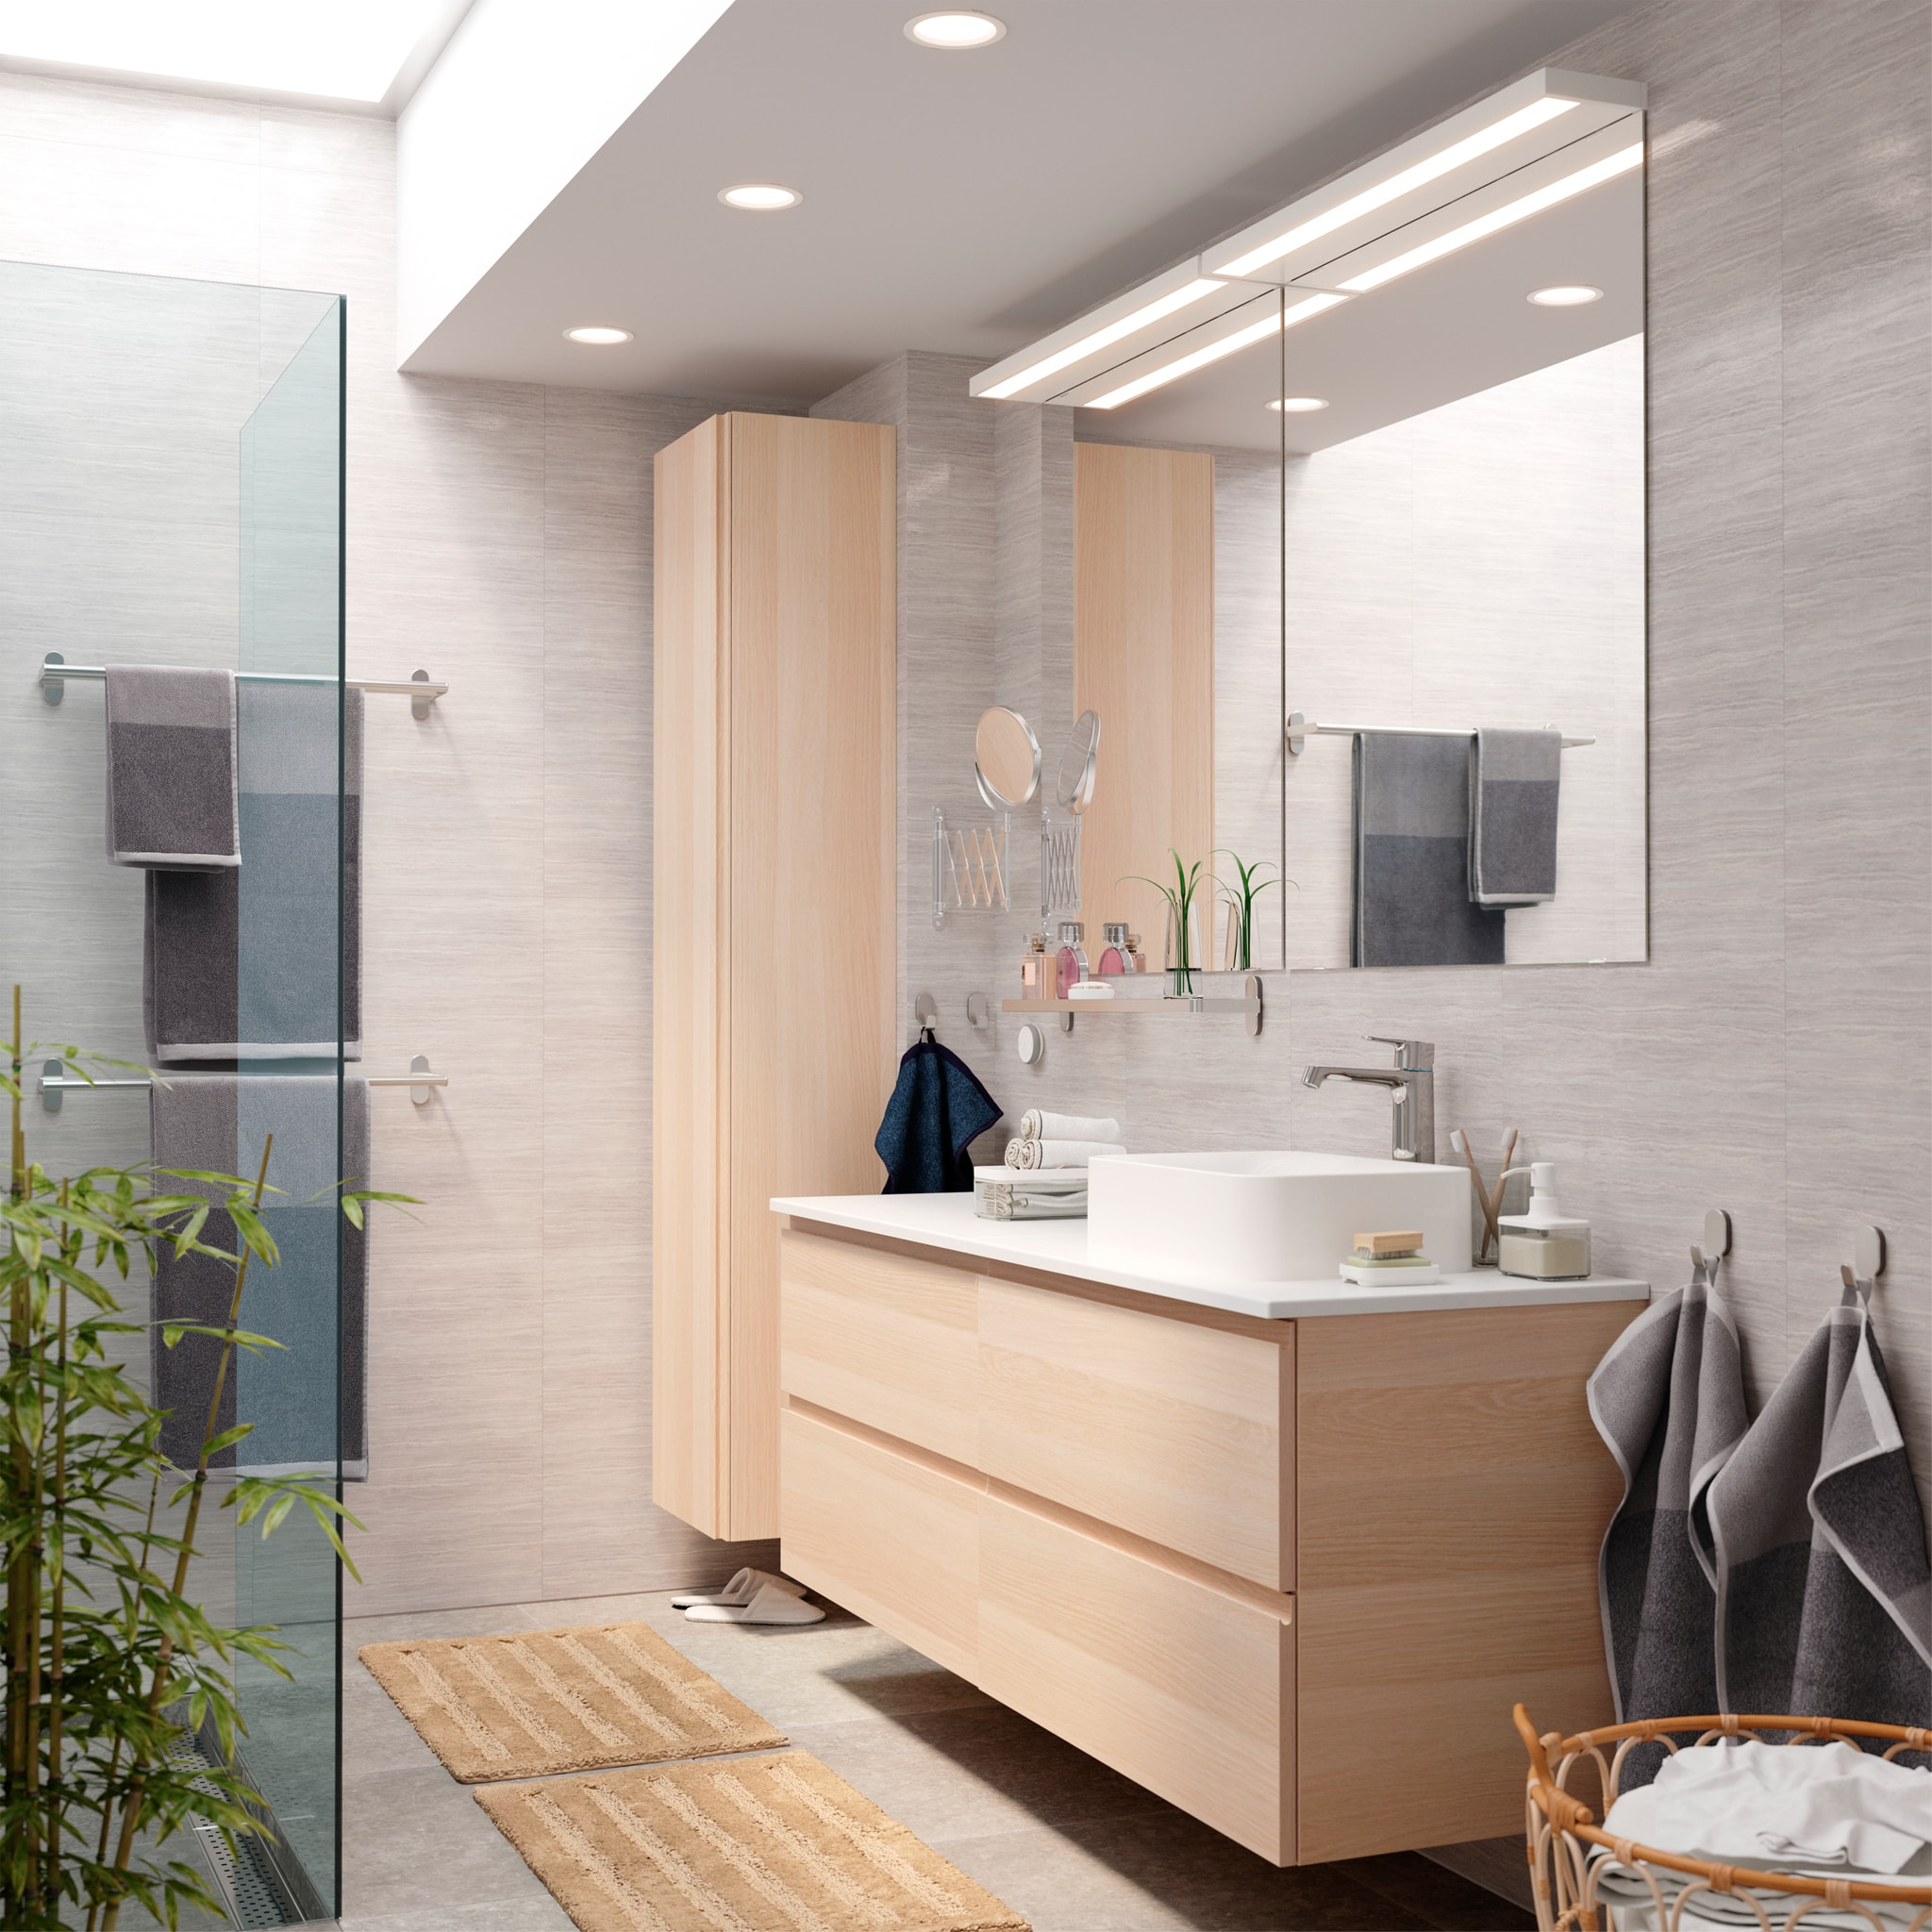 A bathroom with behind-the-scenes storage (HK Only)